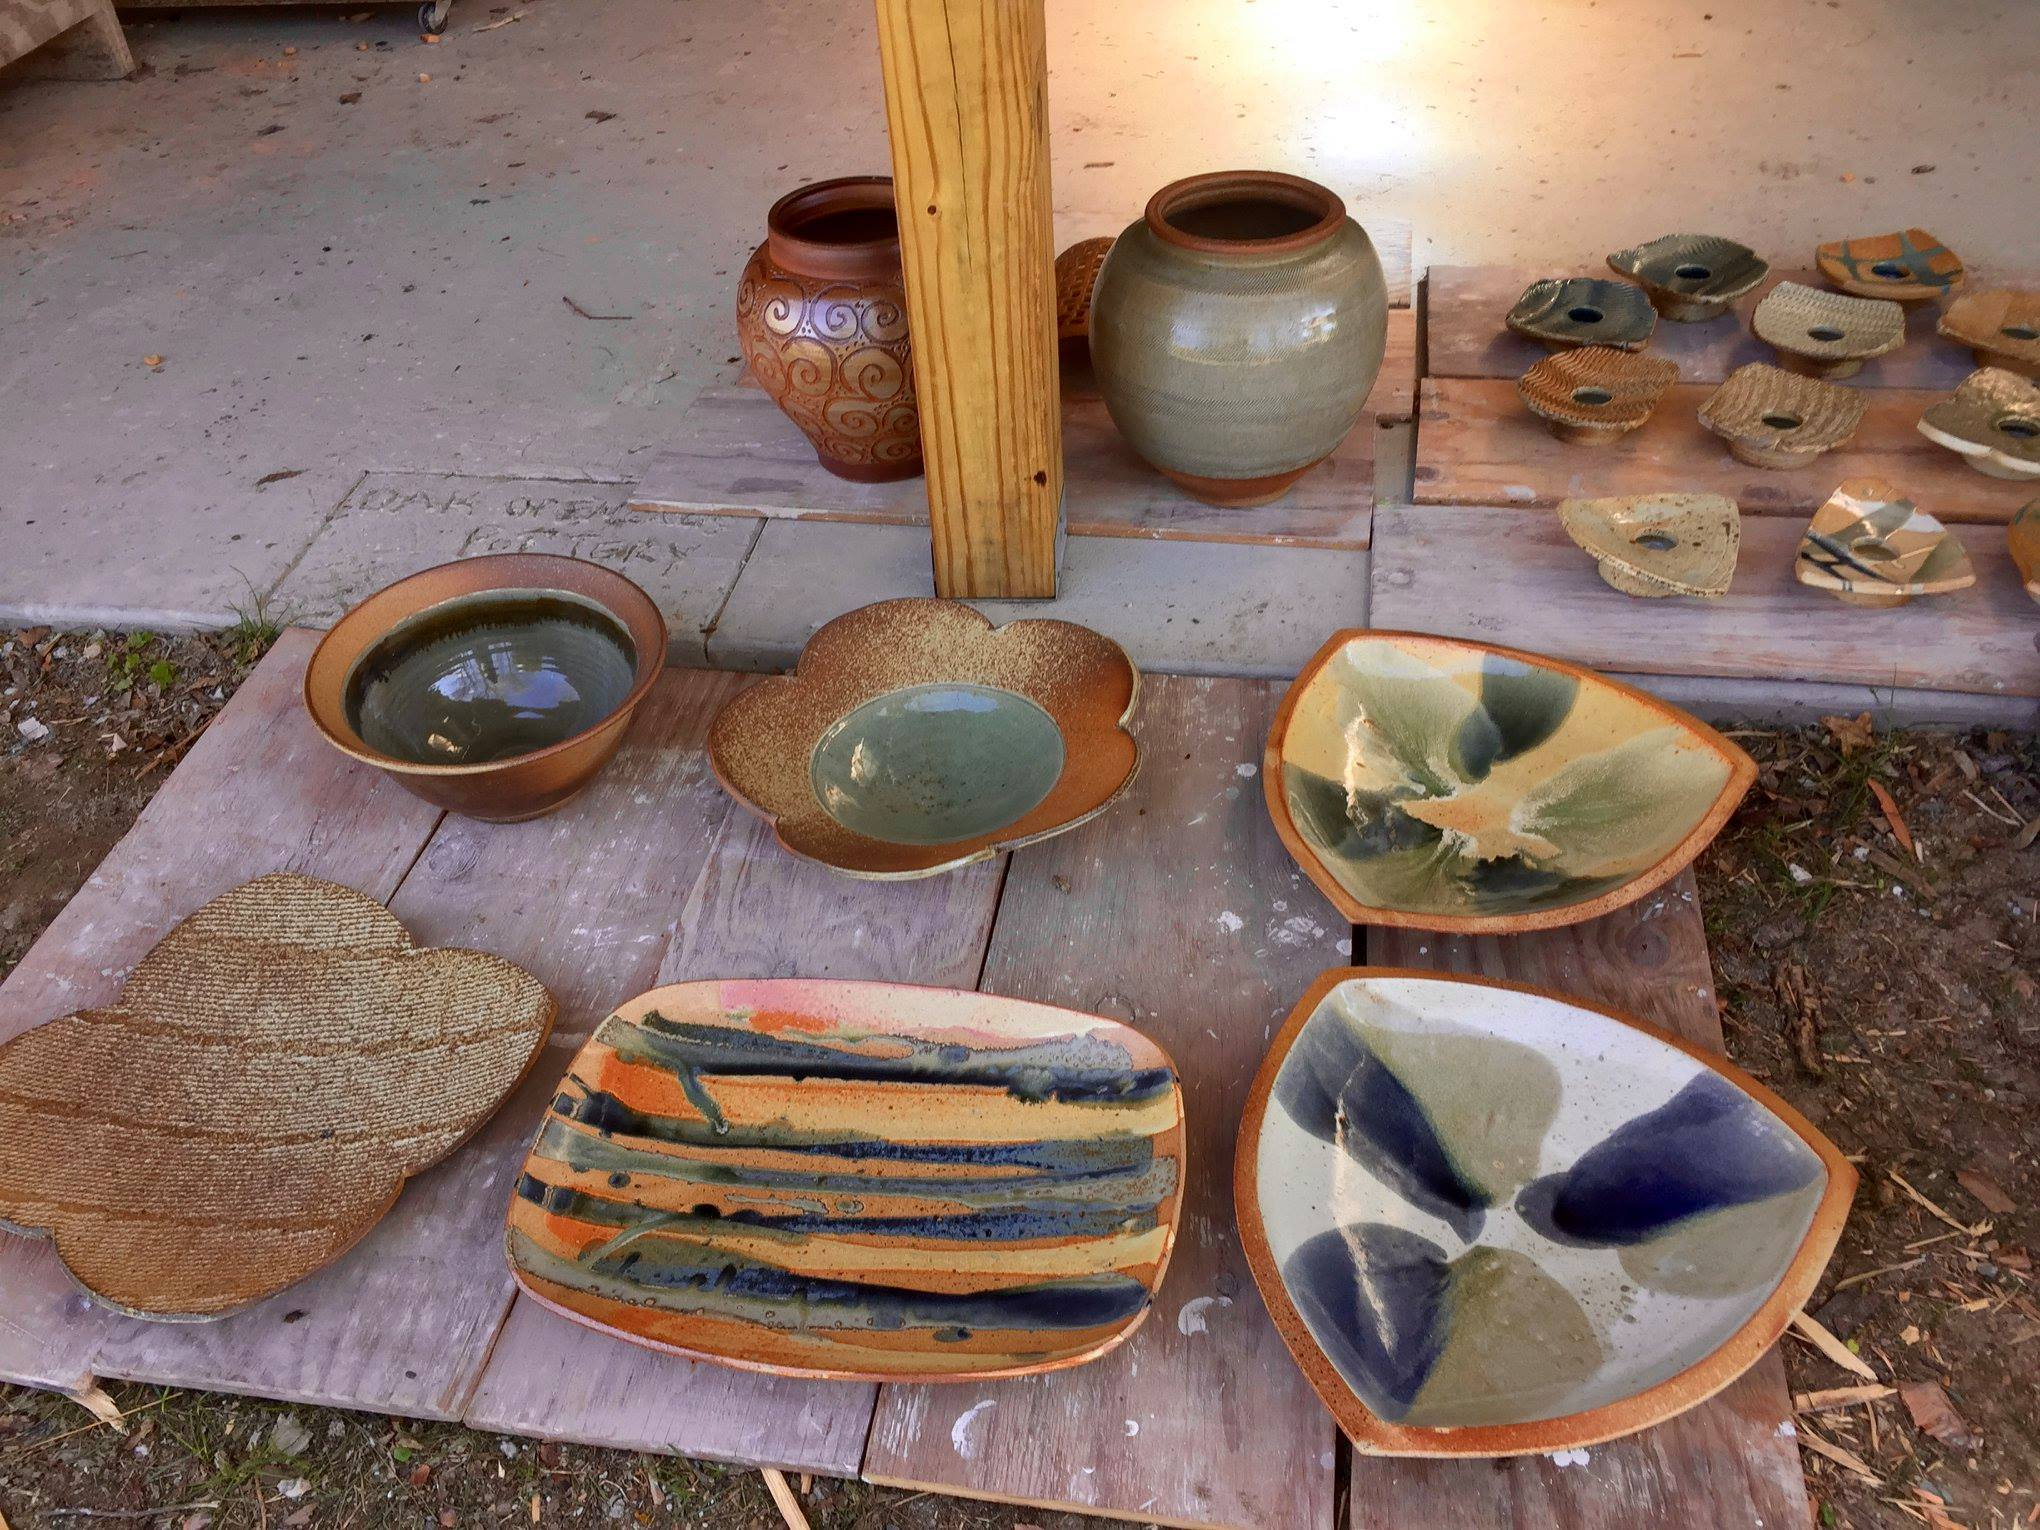 Oak Openings Pottery